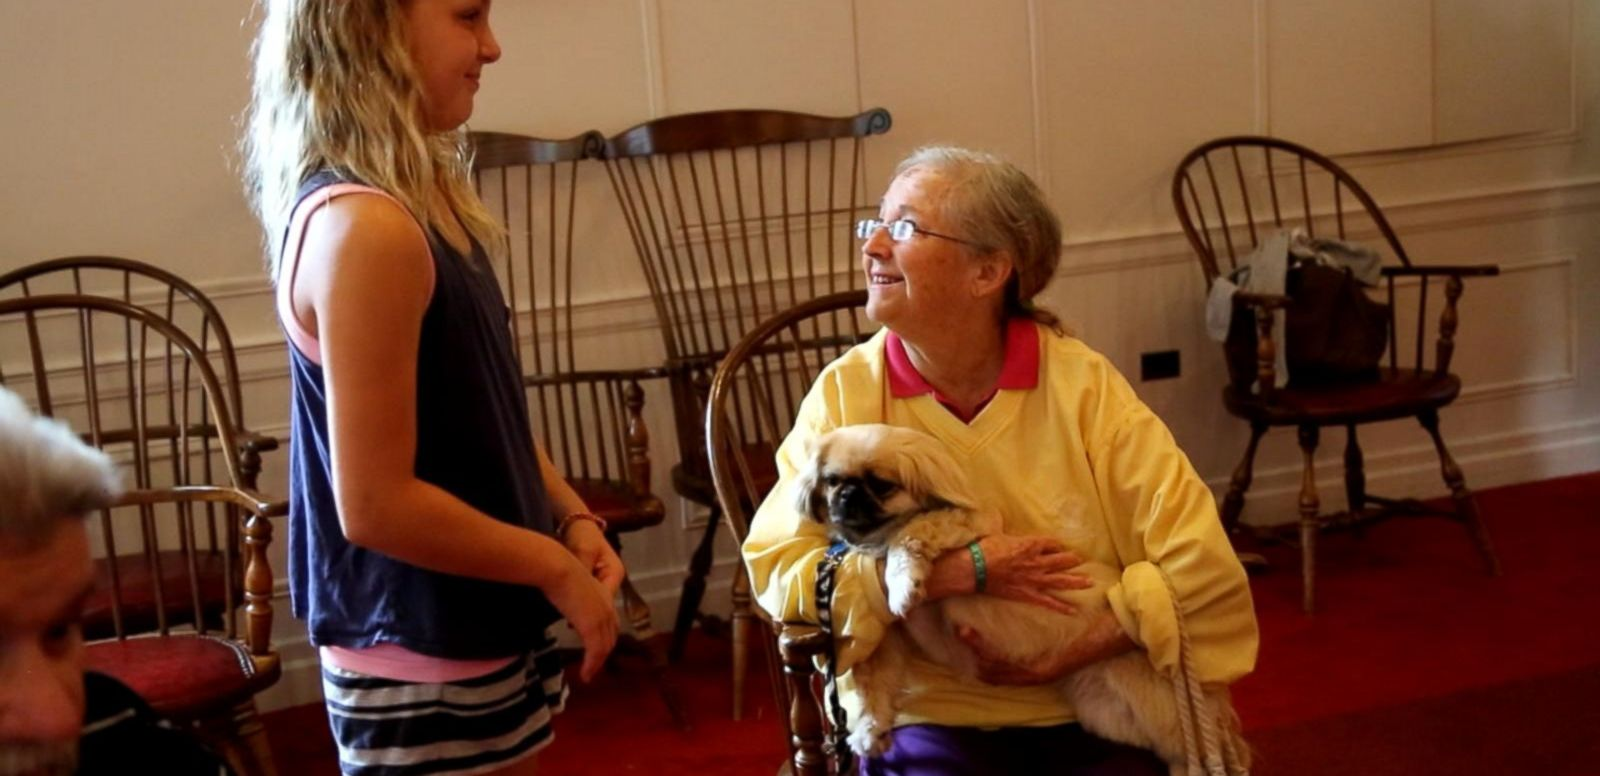 VIDEO: How Pet Therapy Emotionally, Physically Benefits Nursing Home Residents